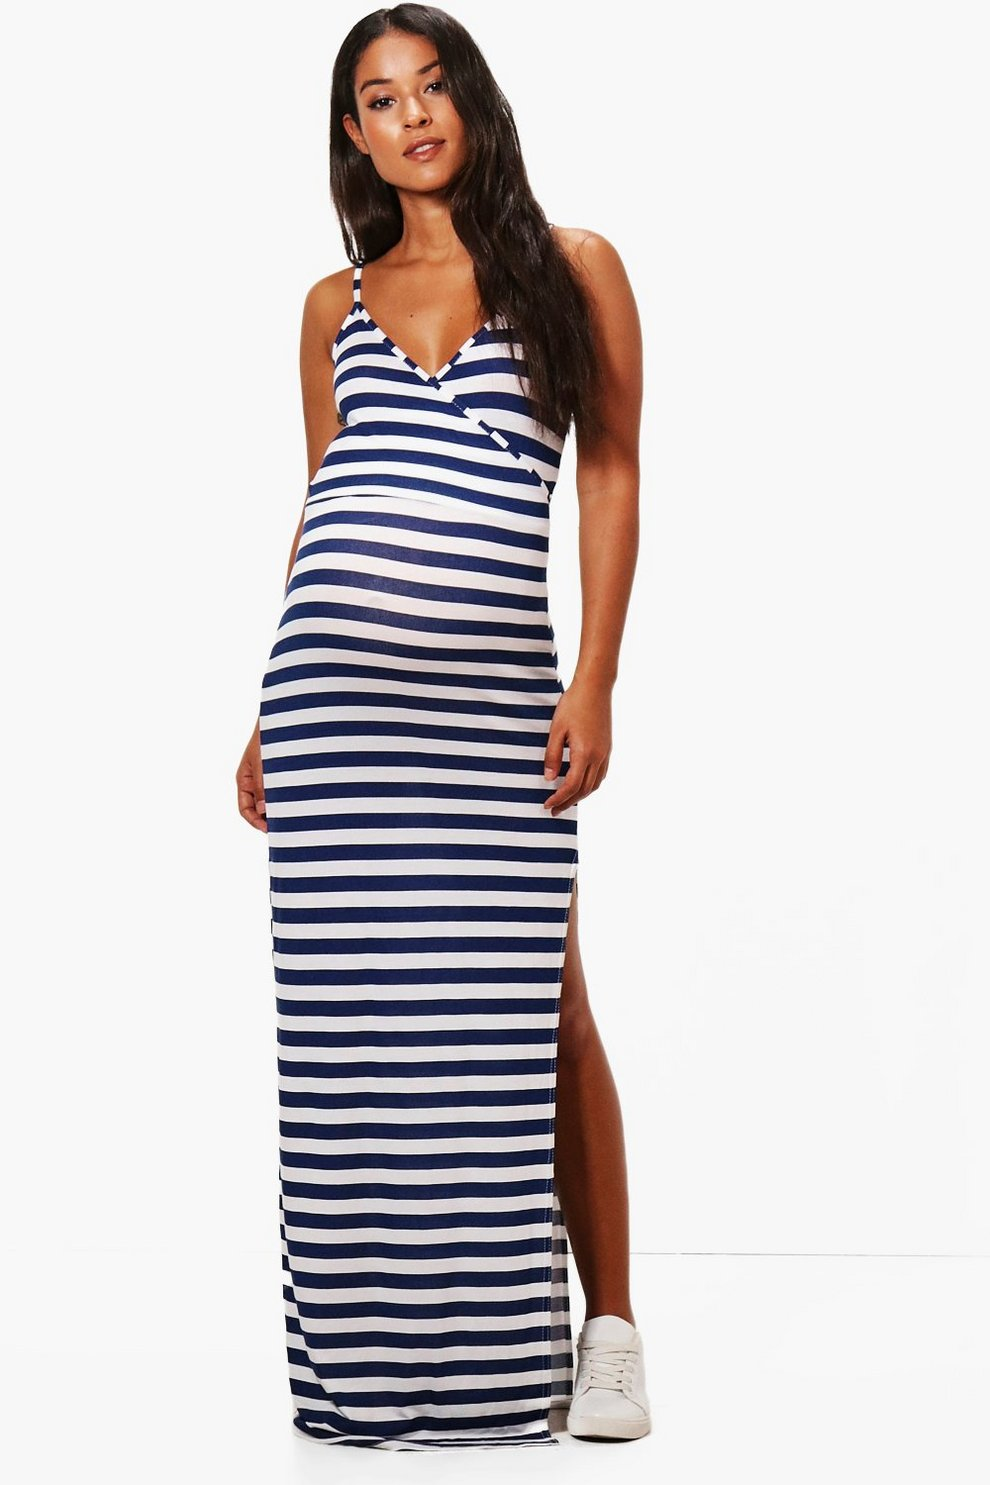 Boohoo Stripe Wrap Front Maxi Dress Cheapest Price Online Clearance The Cheapest Outlet Finishline Free Shipping 100% Authentic Really R6rUy